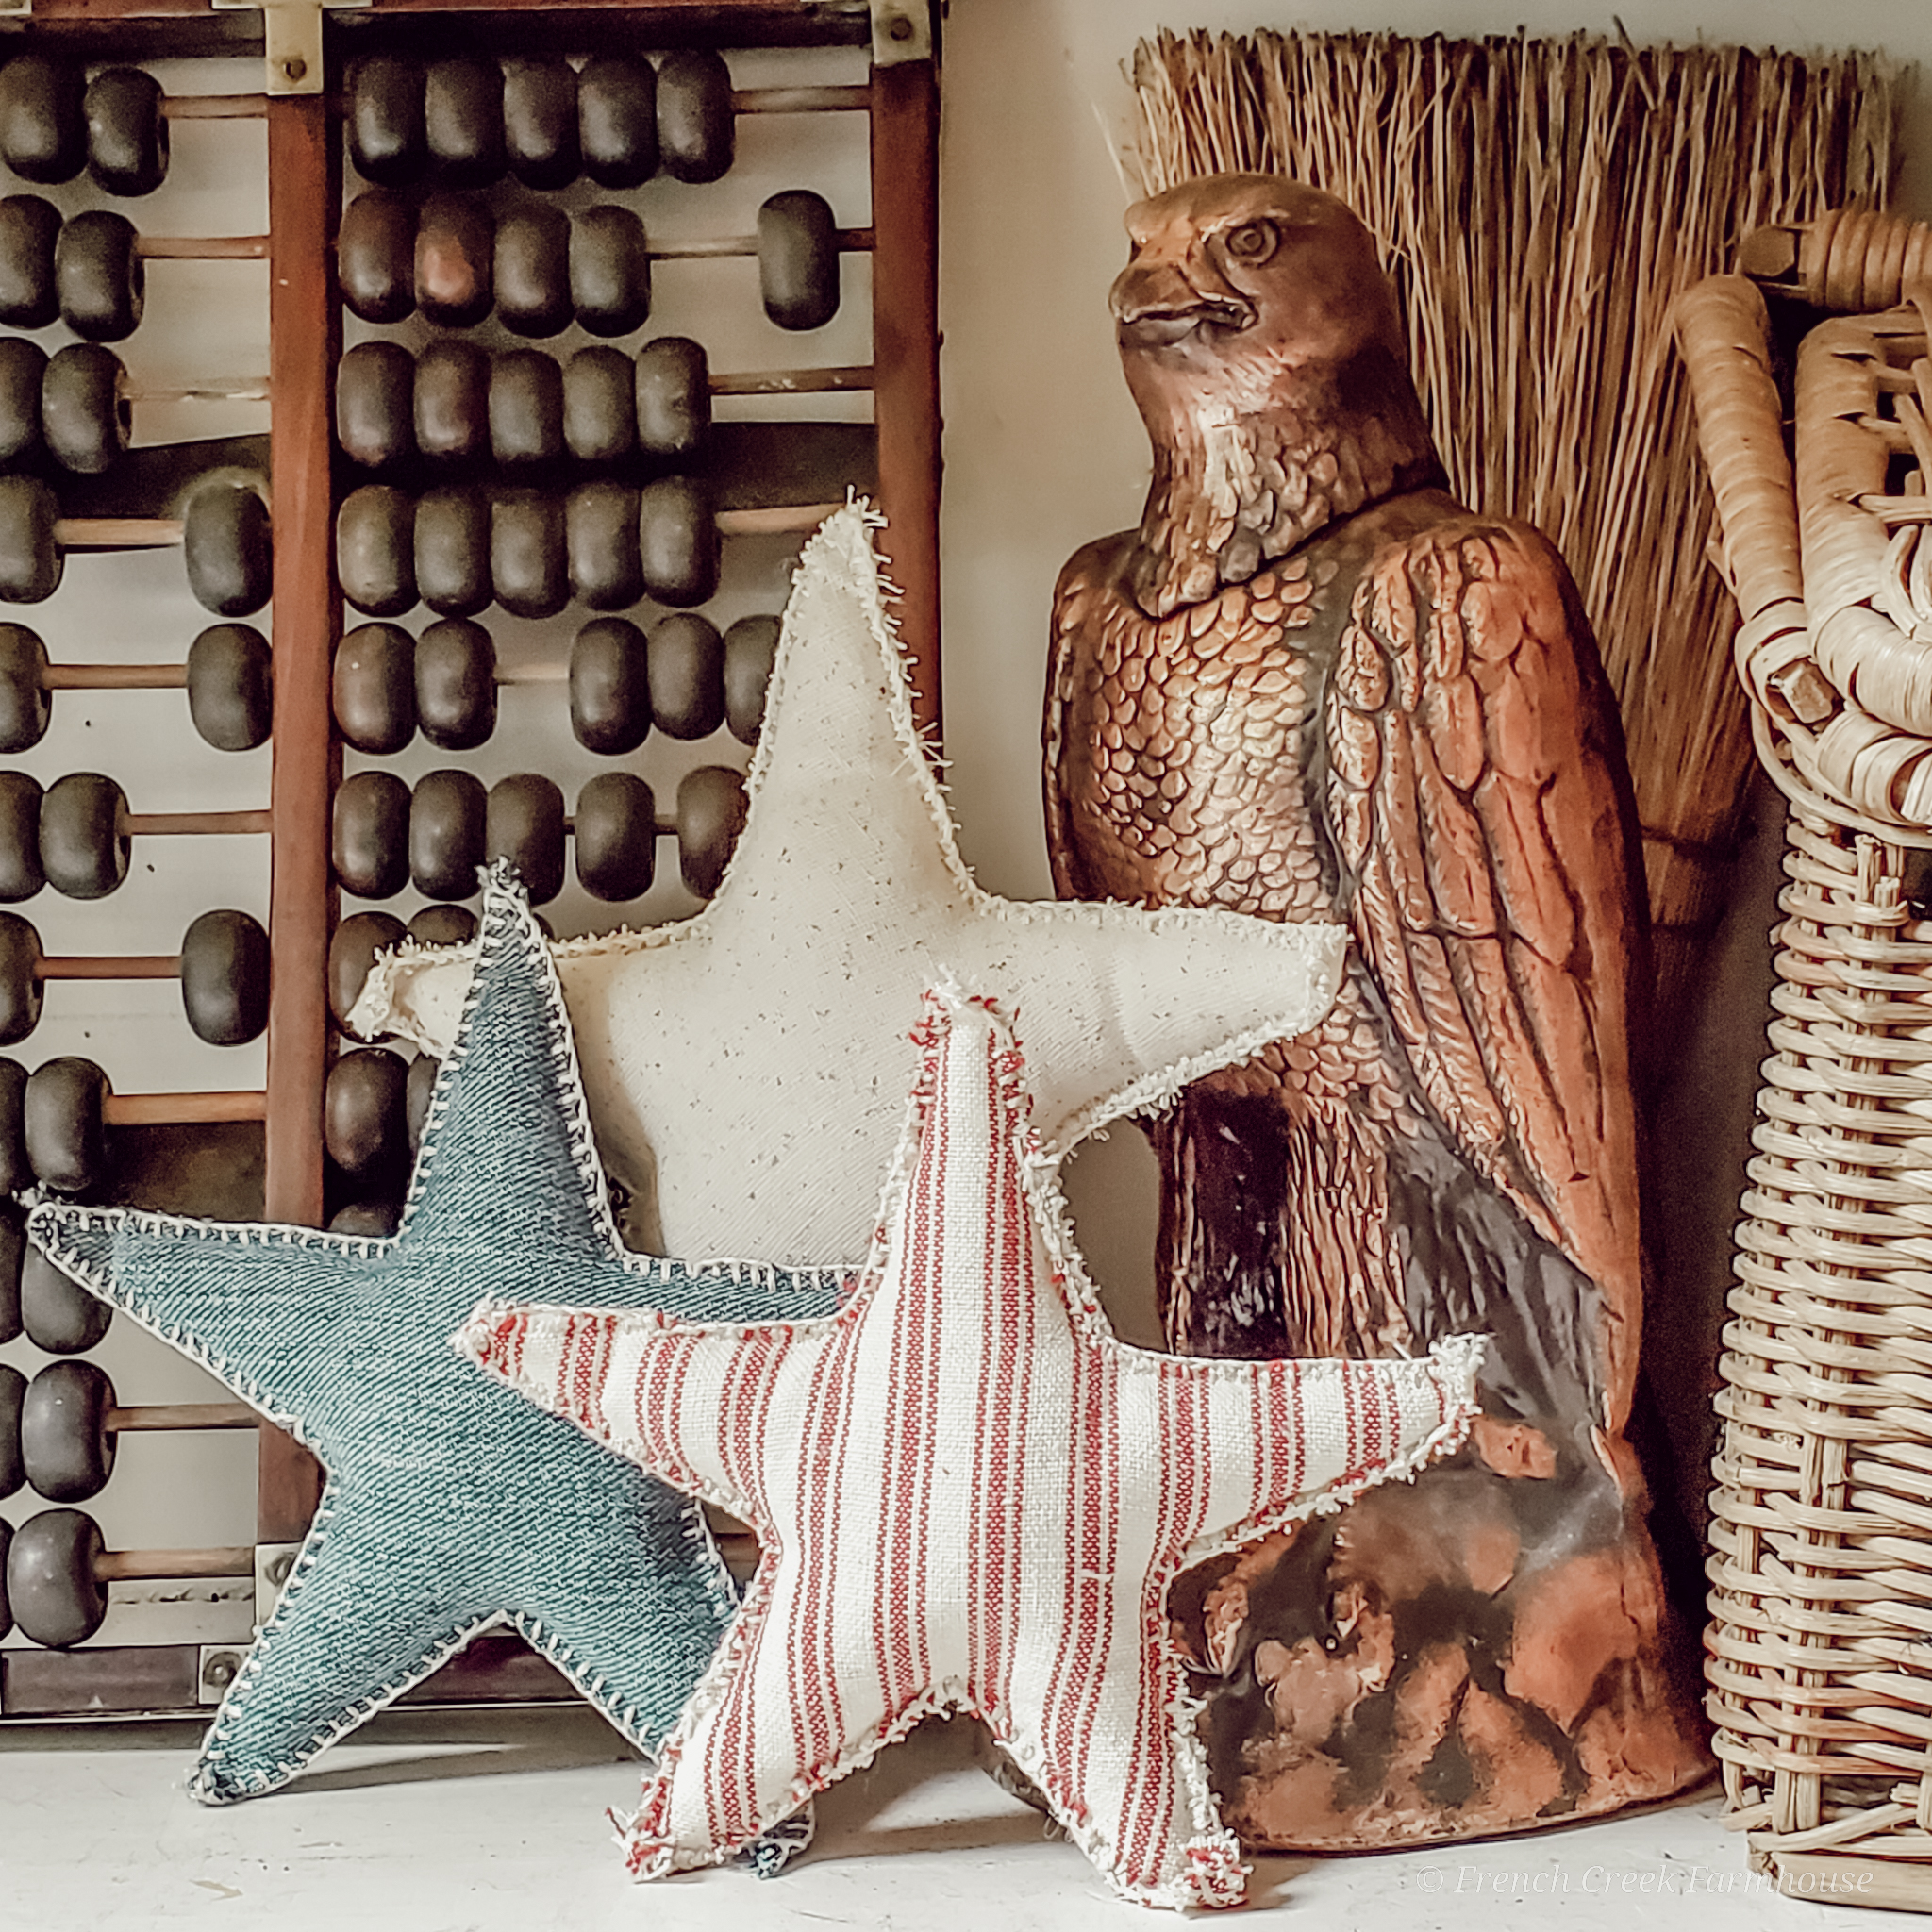 A vintage eagle statue and patriotic stars for Americana charm